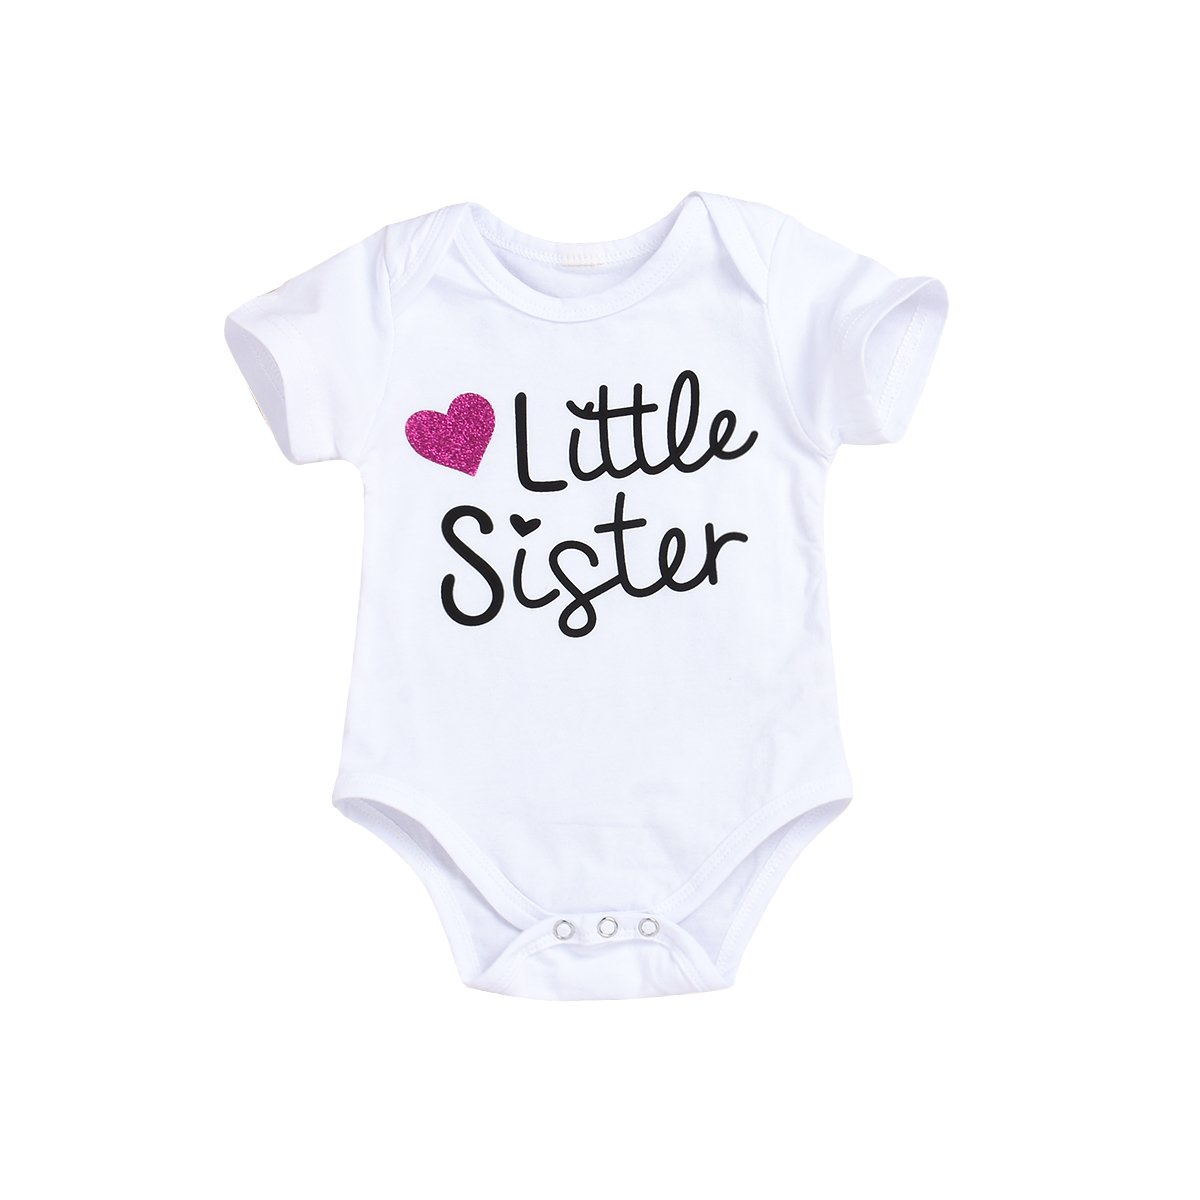 94687c8fca6f Amazon.com  Brother Matching Outfits Infant Baby Girls Boys Letter Print  Short Sleeve Print Top Romper Jumpsuit Clothes Outfit  Clothing